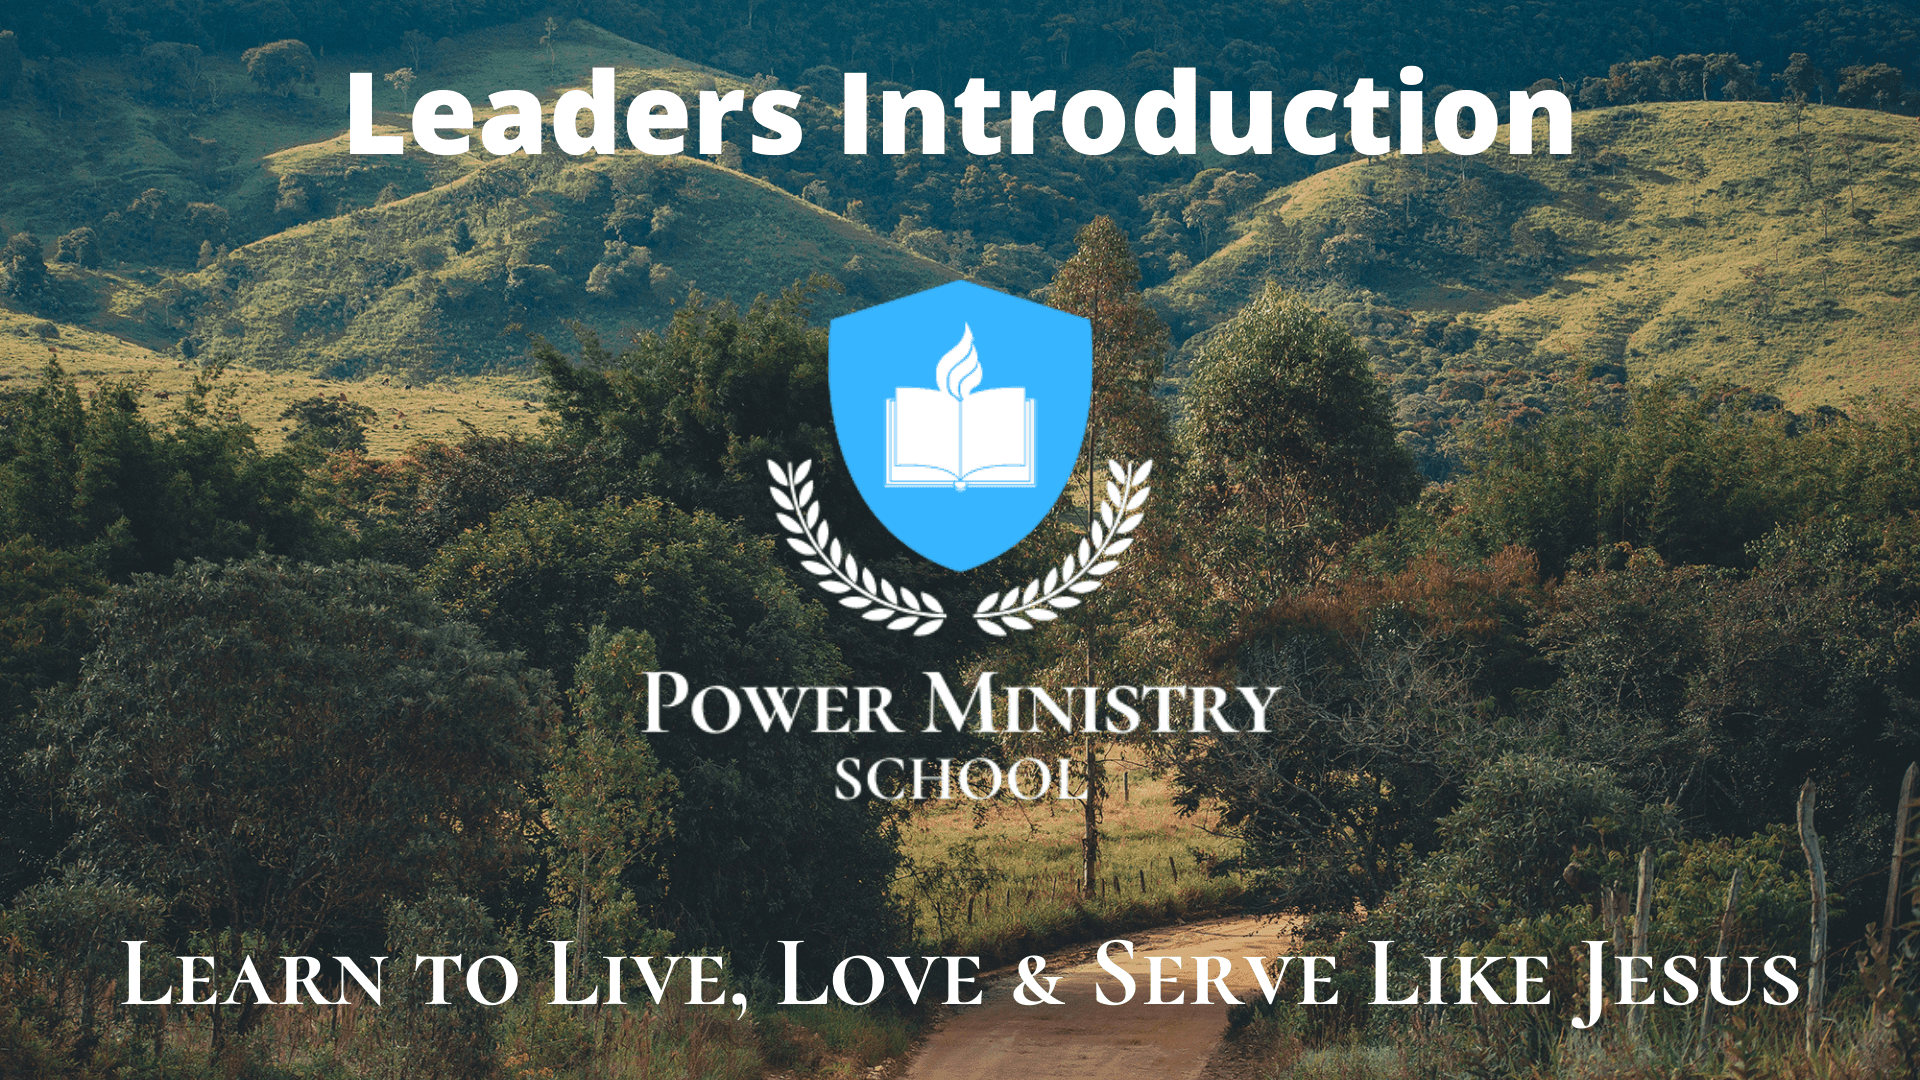 Leaders Introduction